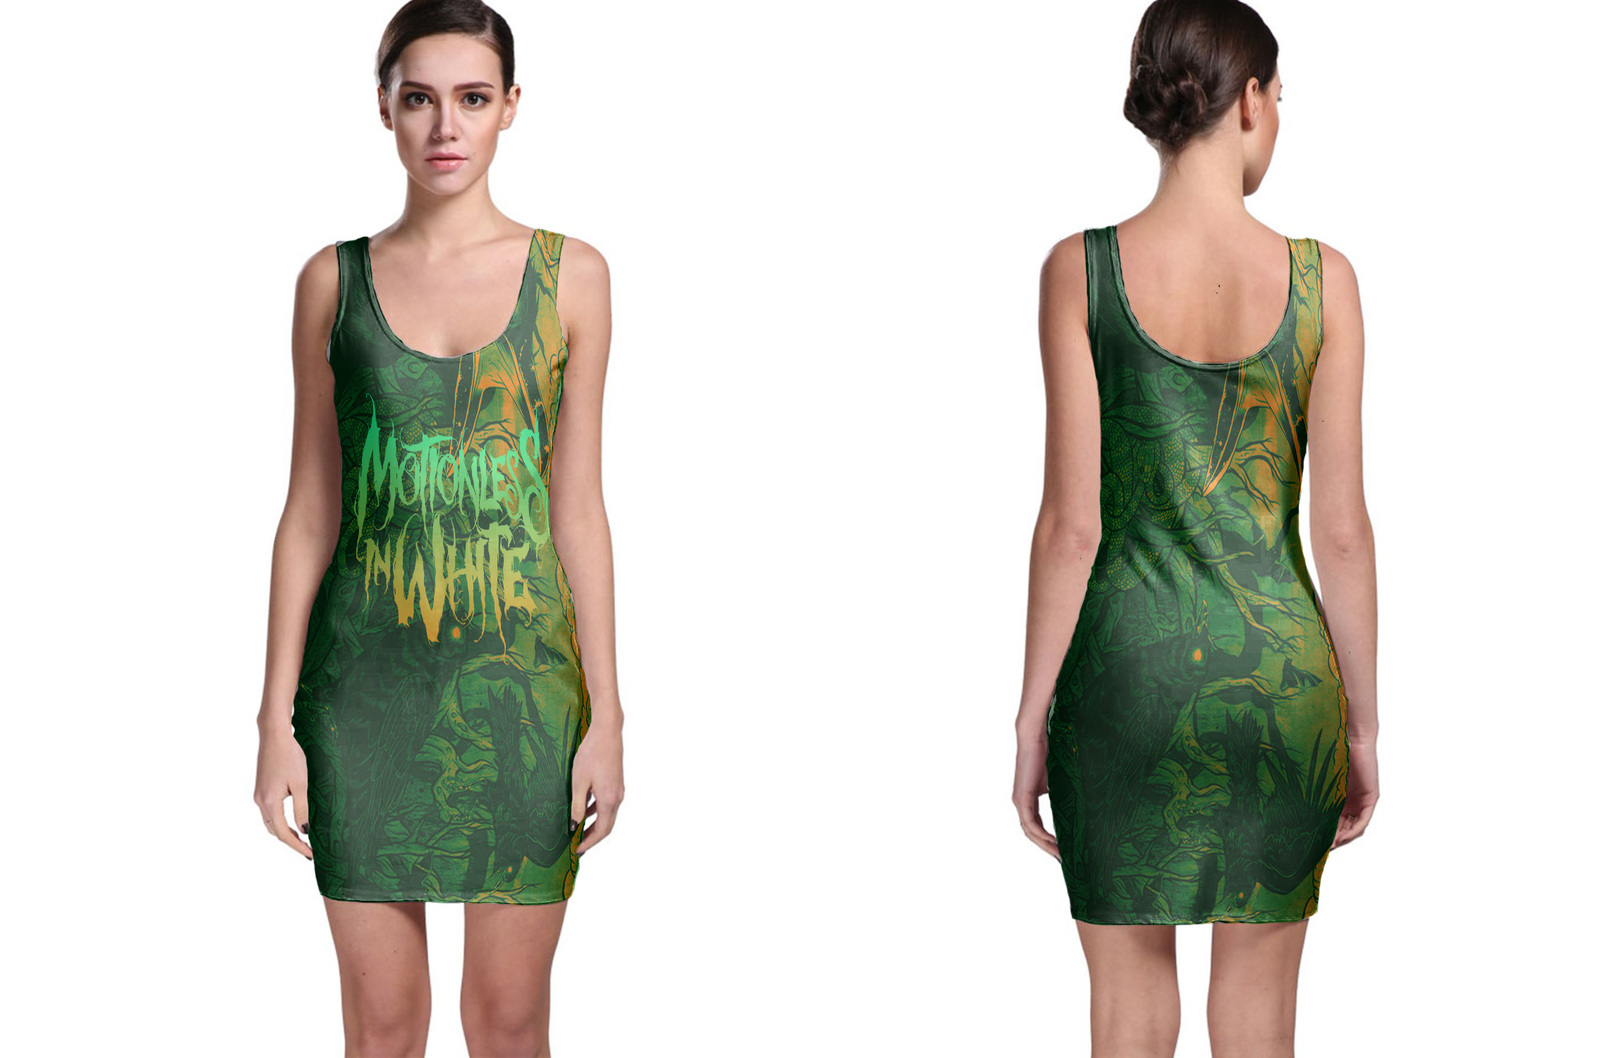 Motionless in White Bodycon Dress